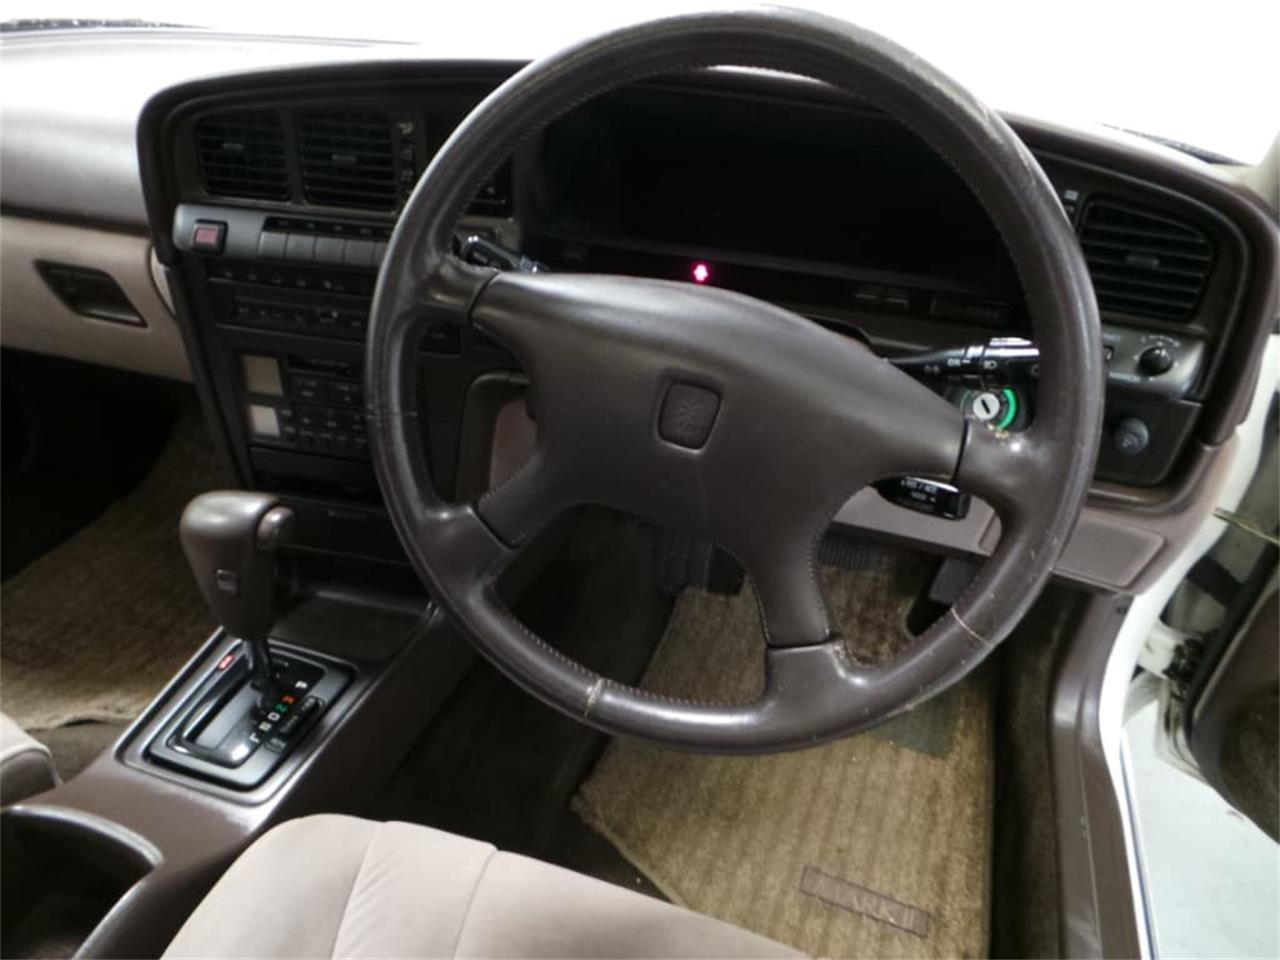 Large Picture of '88 Corona Mark II located in Virginia - $7,900.00 Offered by Duncan Imports & Classic Cars - JLDS